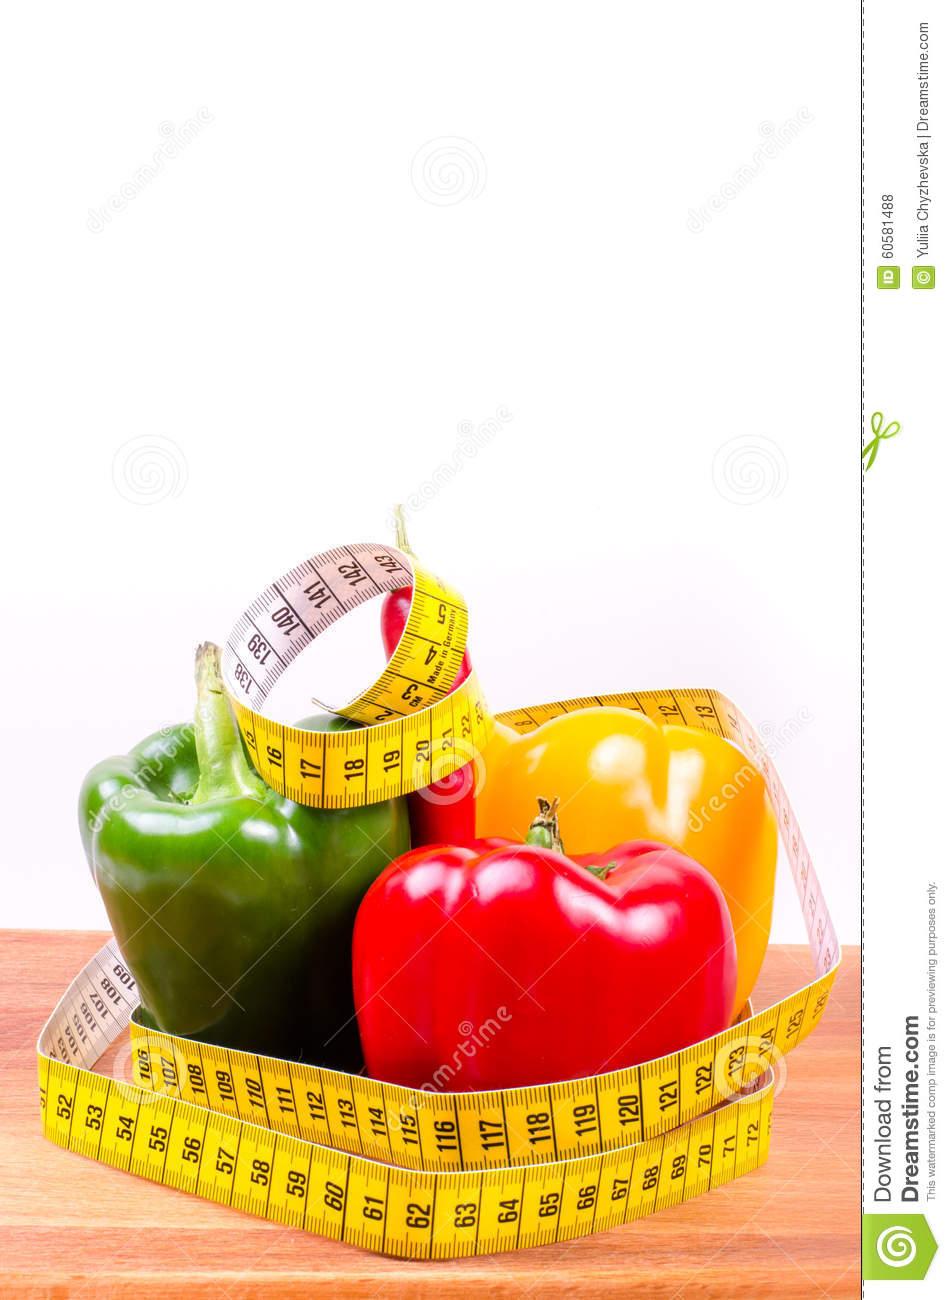 Colorful paprika and measuring tape, Diet concept